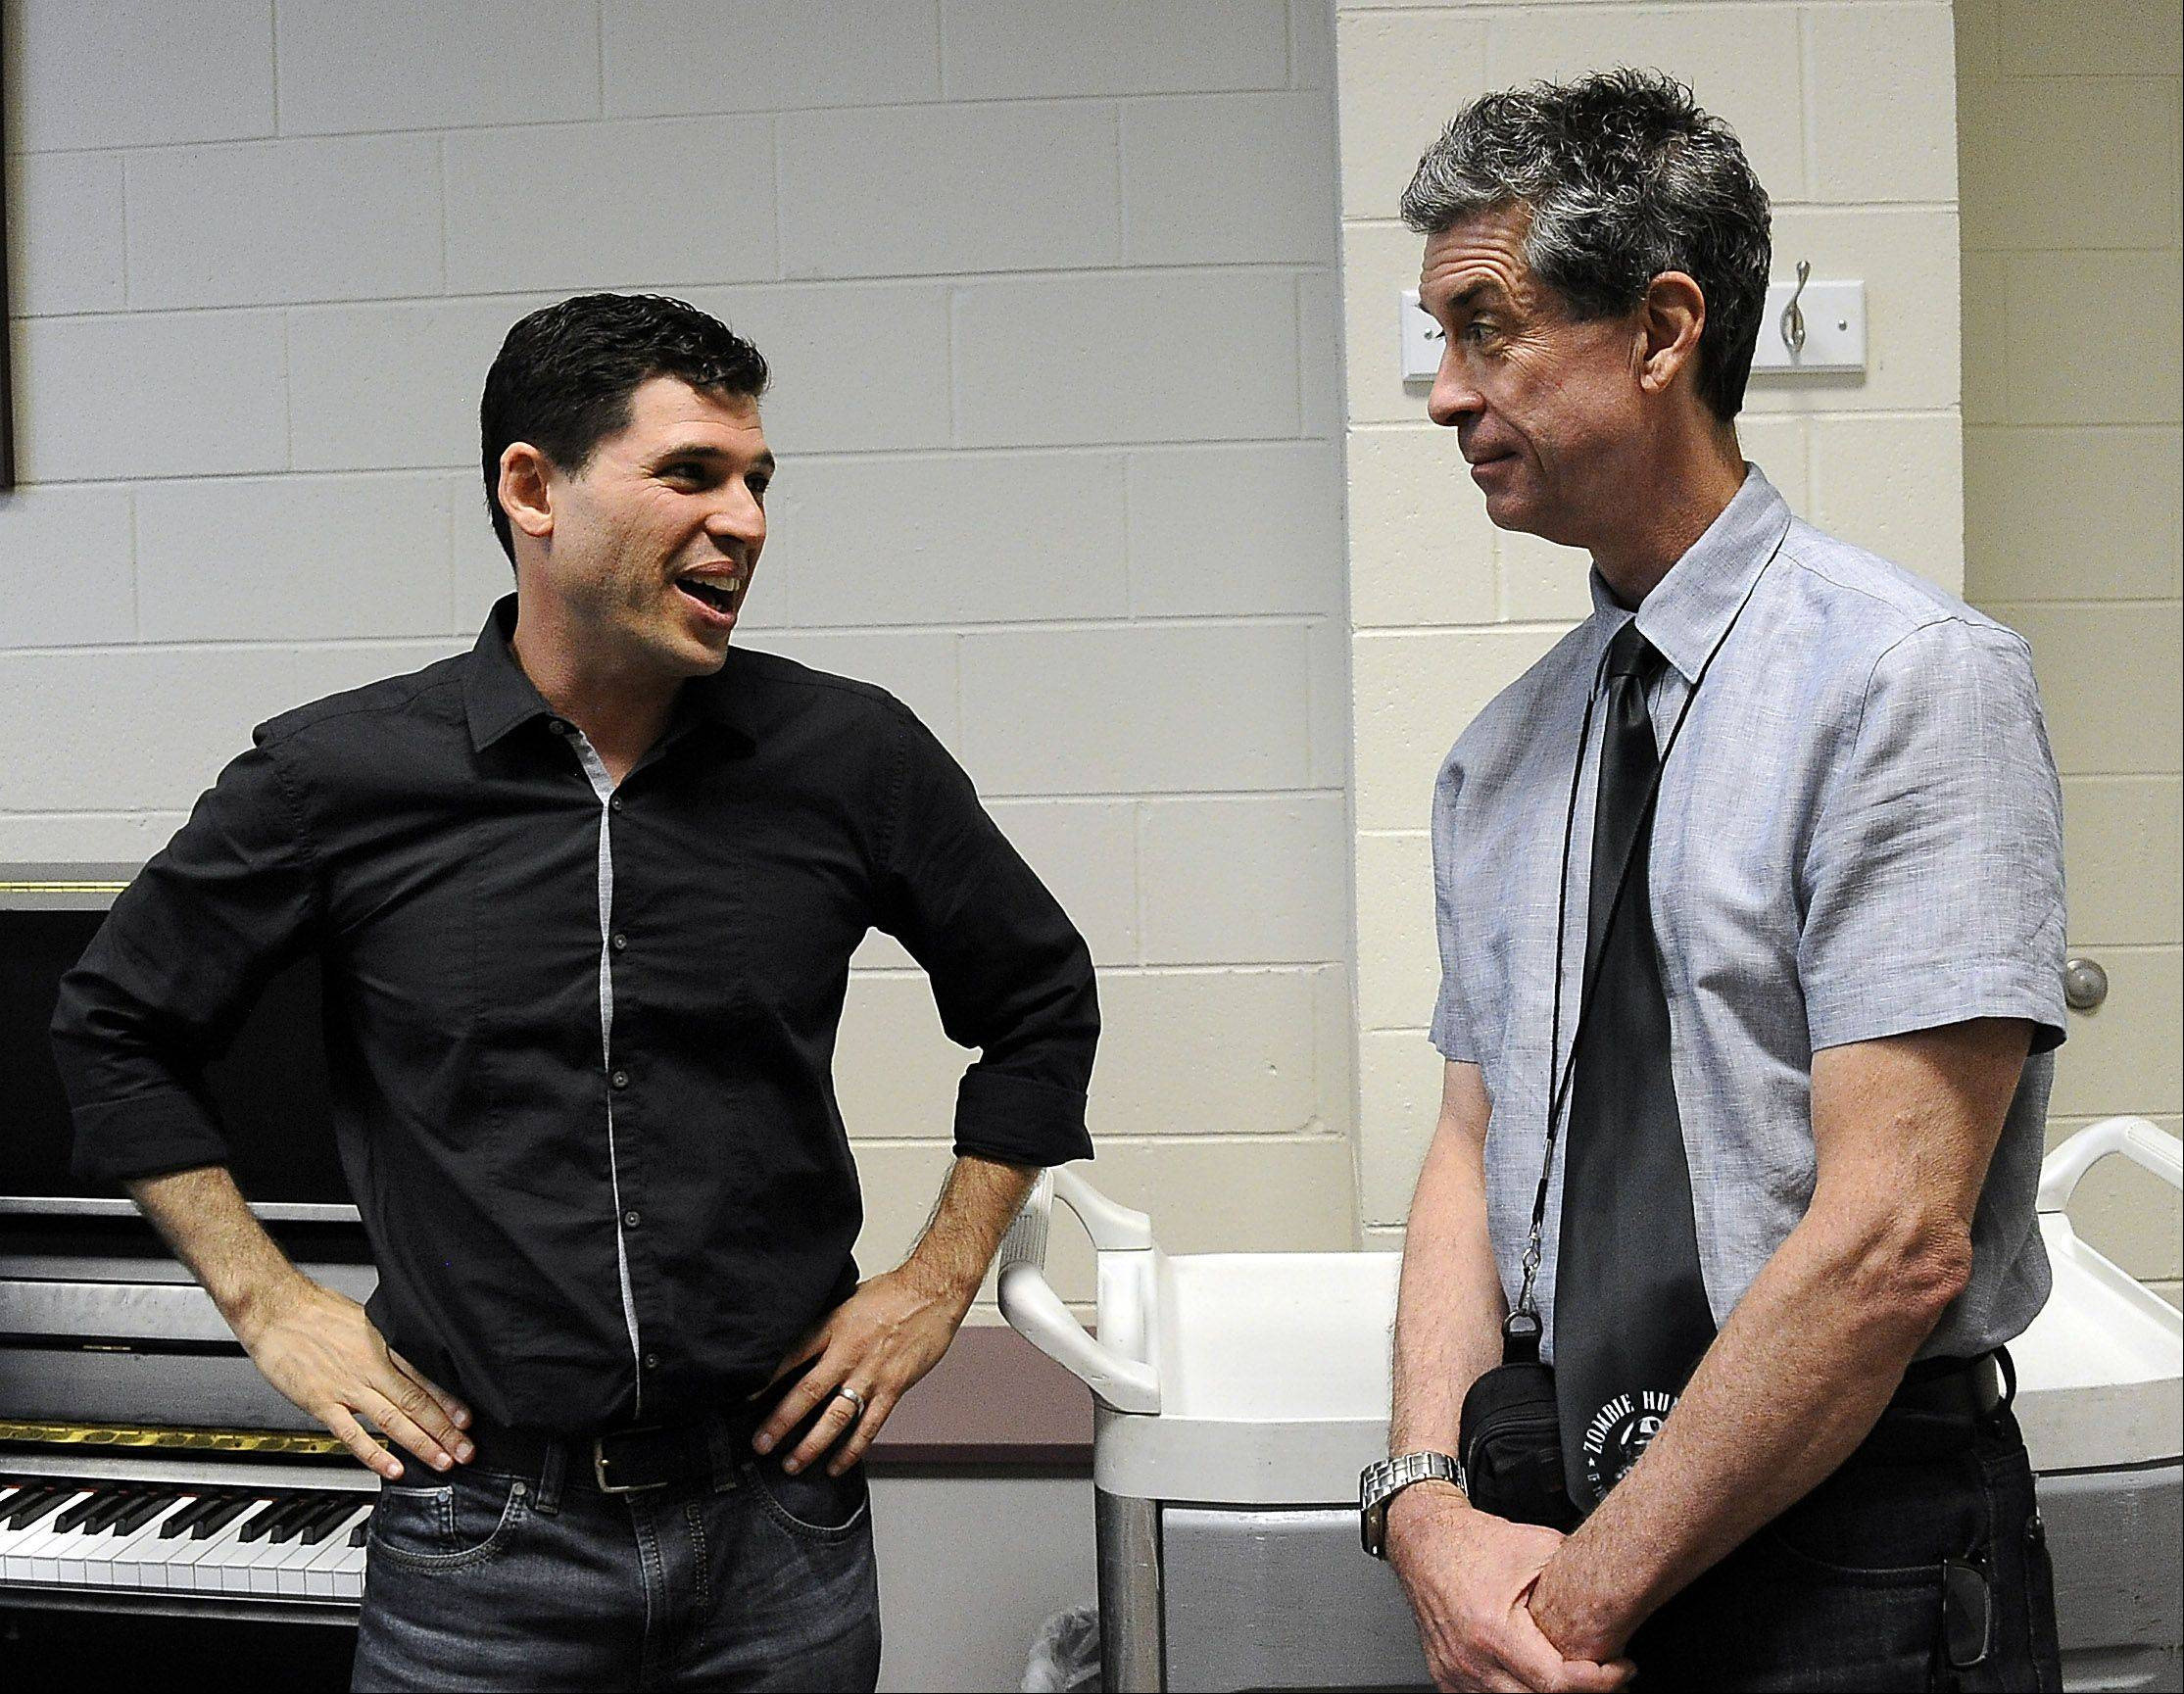 Daily Herald film critic Dann Gire (right) talks with Max Brooks, writer of the best-seller �World War Z: An Oral History of the Zombie Wars,� at Harper College before Brooks speaking engagement to a packed house about the undead phenomena.